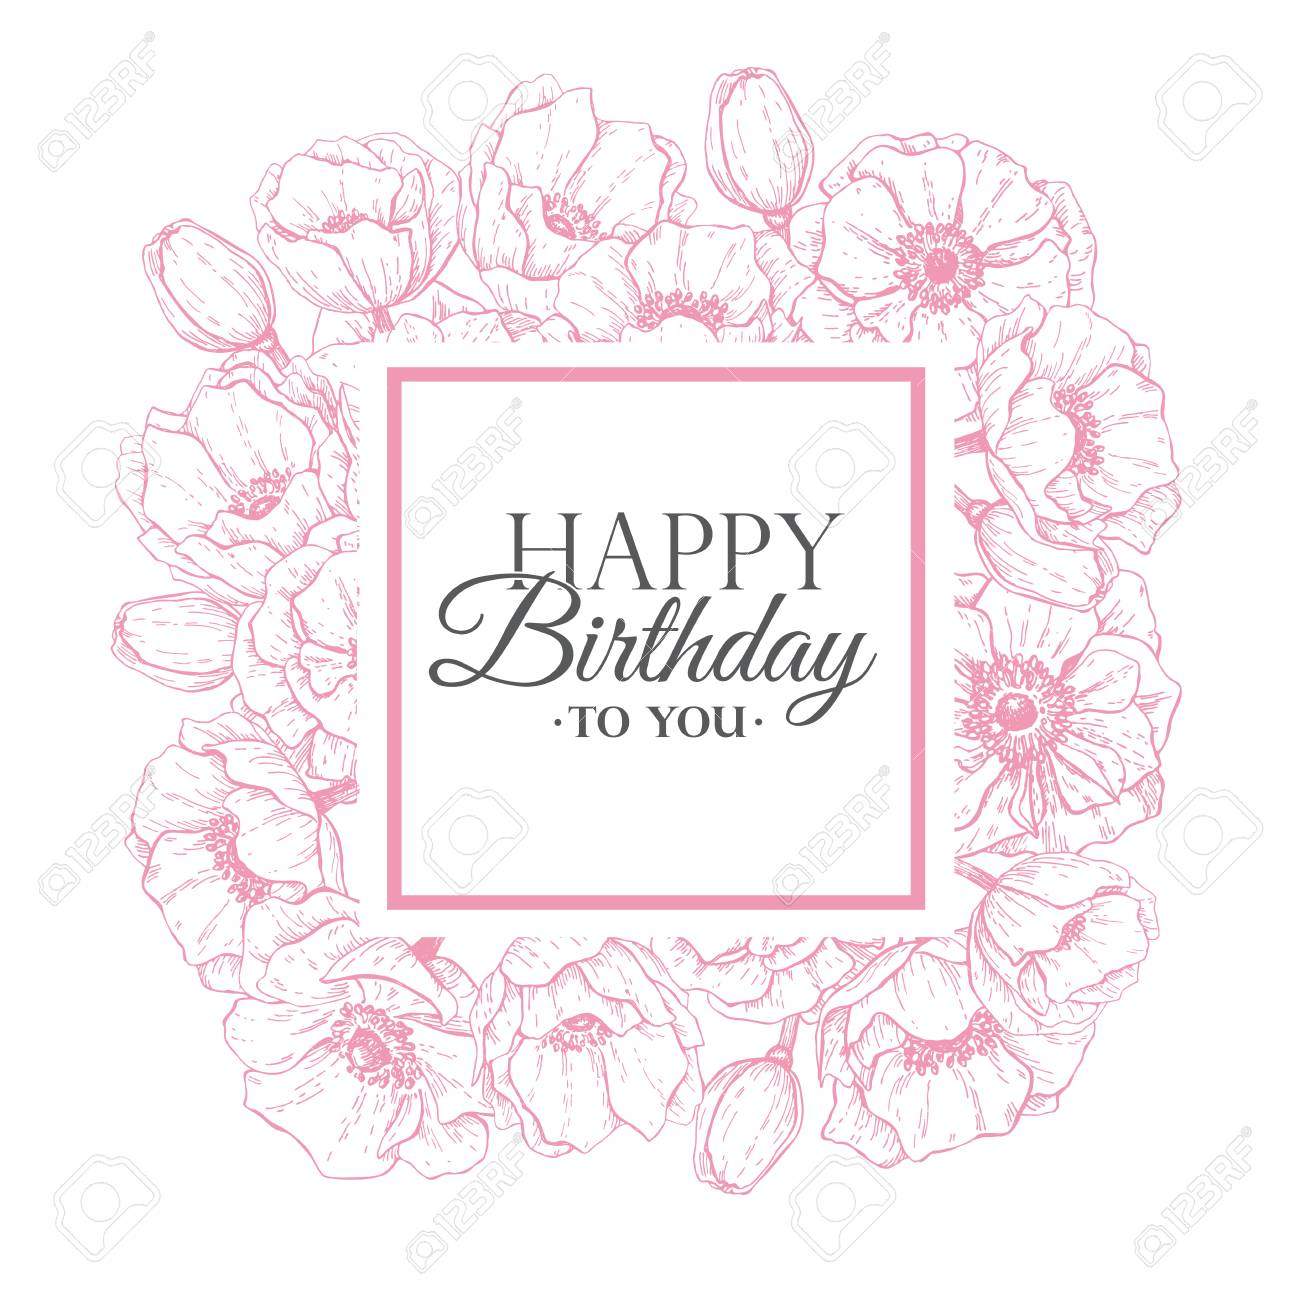 Vector Happy Birthday Flower Illustration Hand Drawn Vintage Anemone Frame Birthday Card With Flowers And Lettering Typography Message Great For